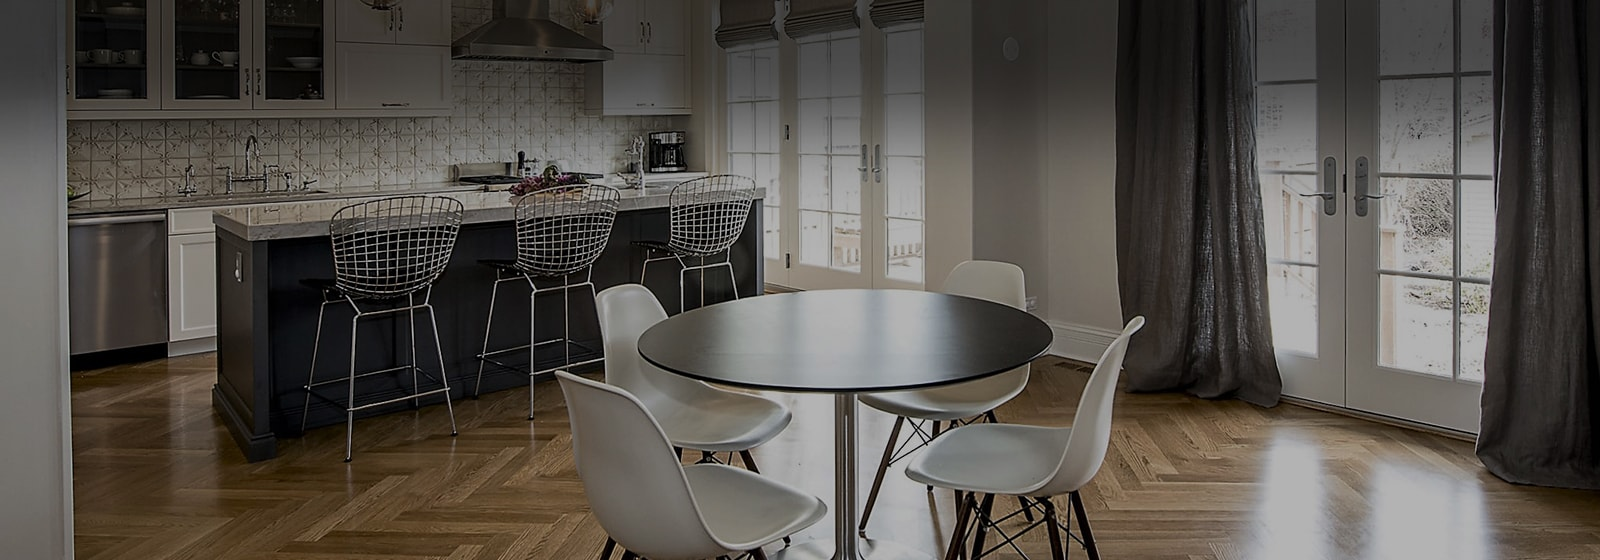 Fashionable kitchen eating area with floor to ceiling windows four modern chairs sit in Chicago